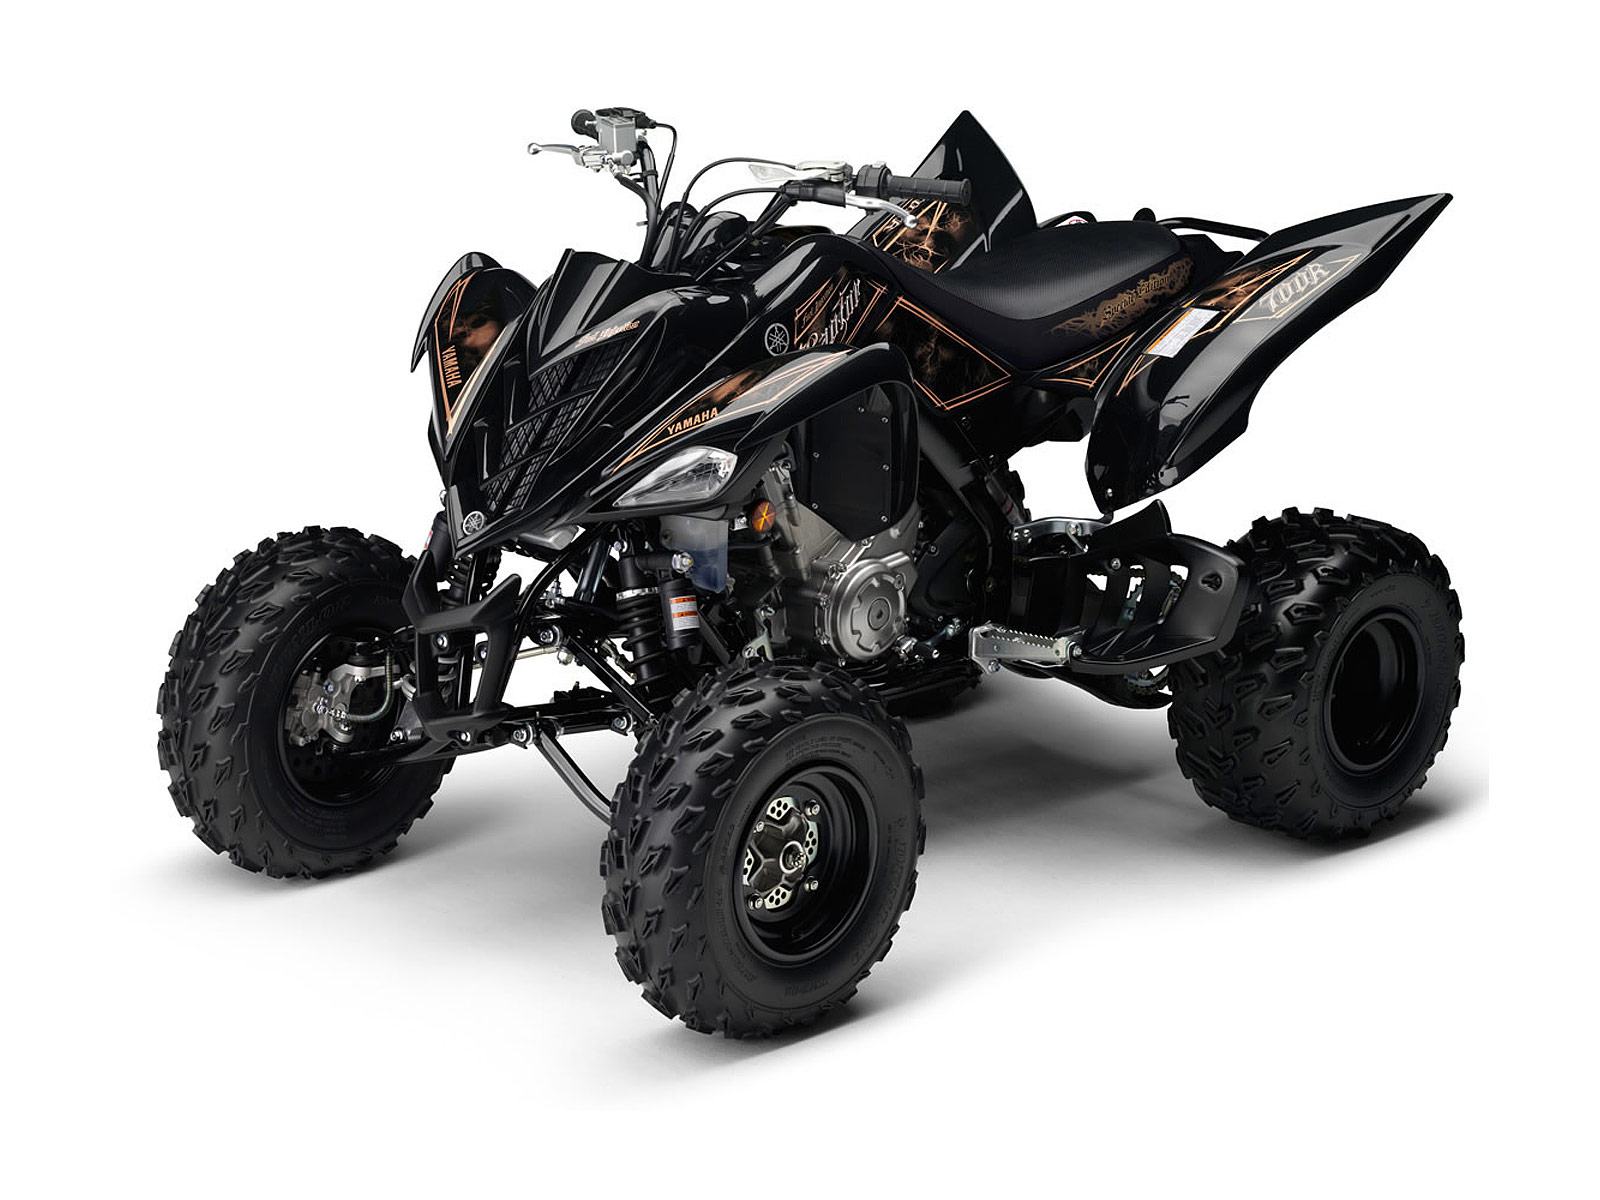 2012 YAMAHA Raptor 700R SE ATV pictures specifications 1600x1200